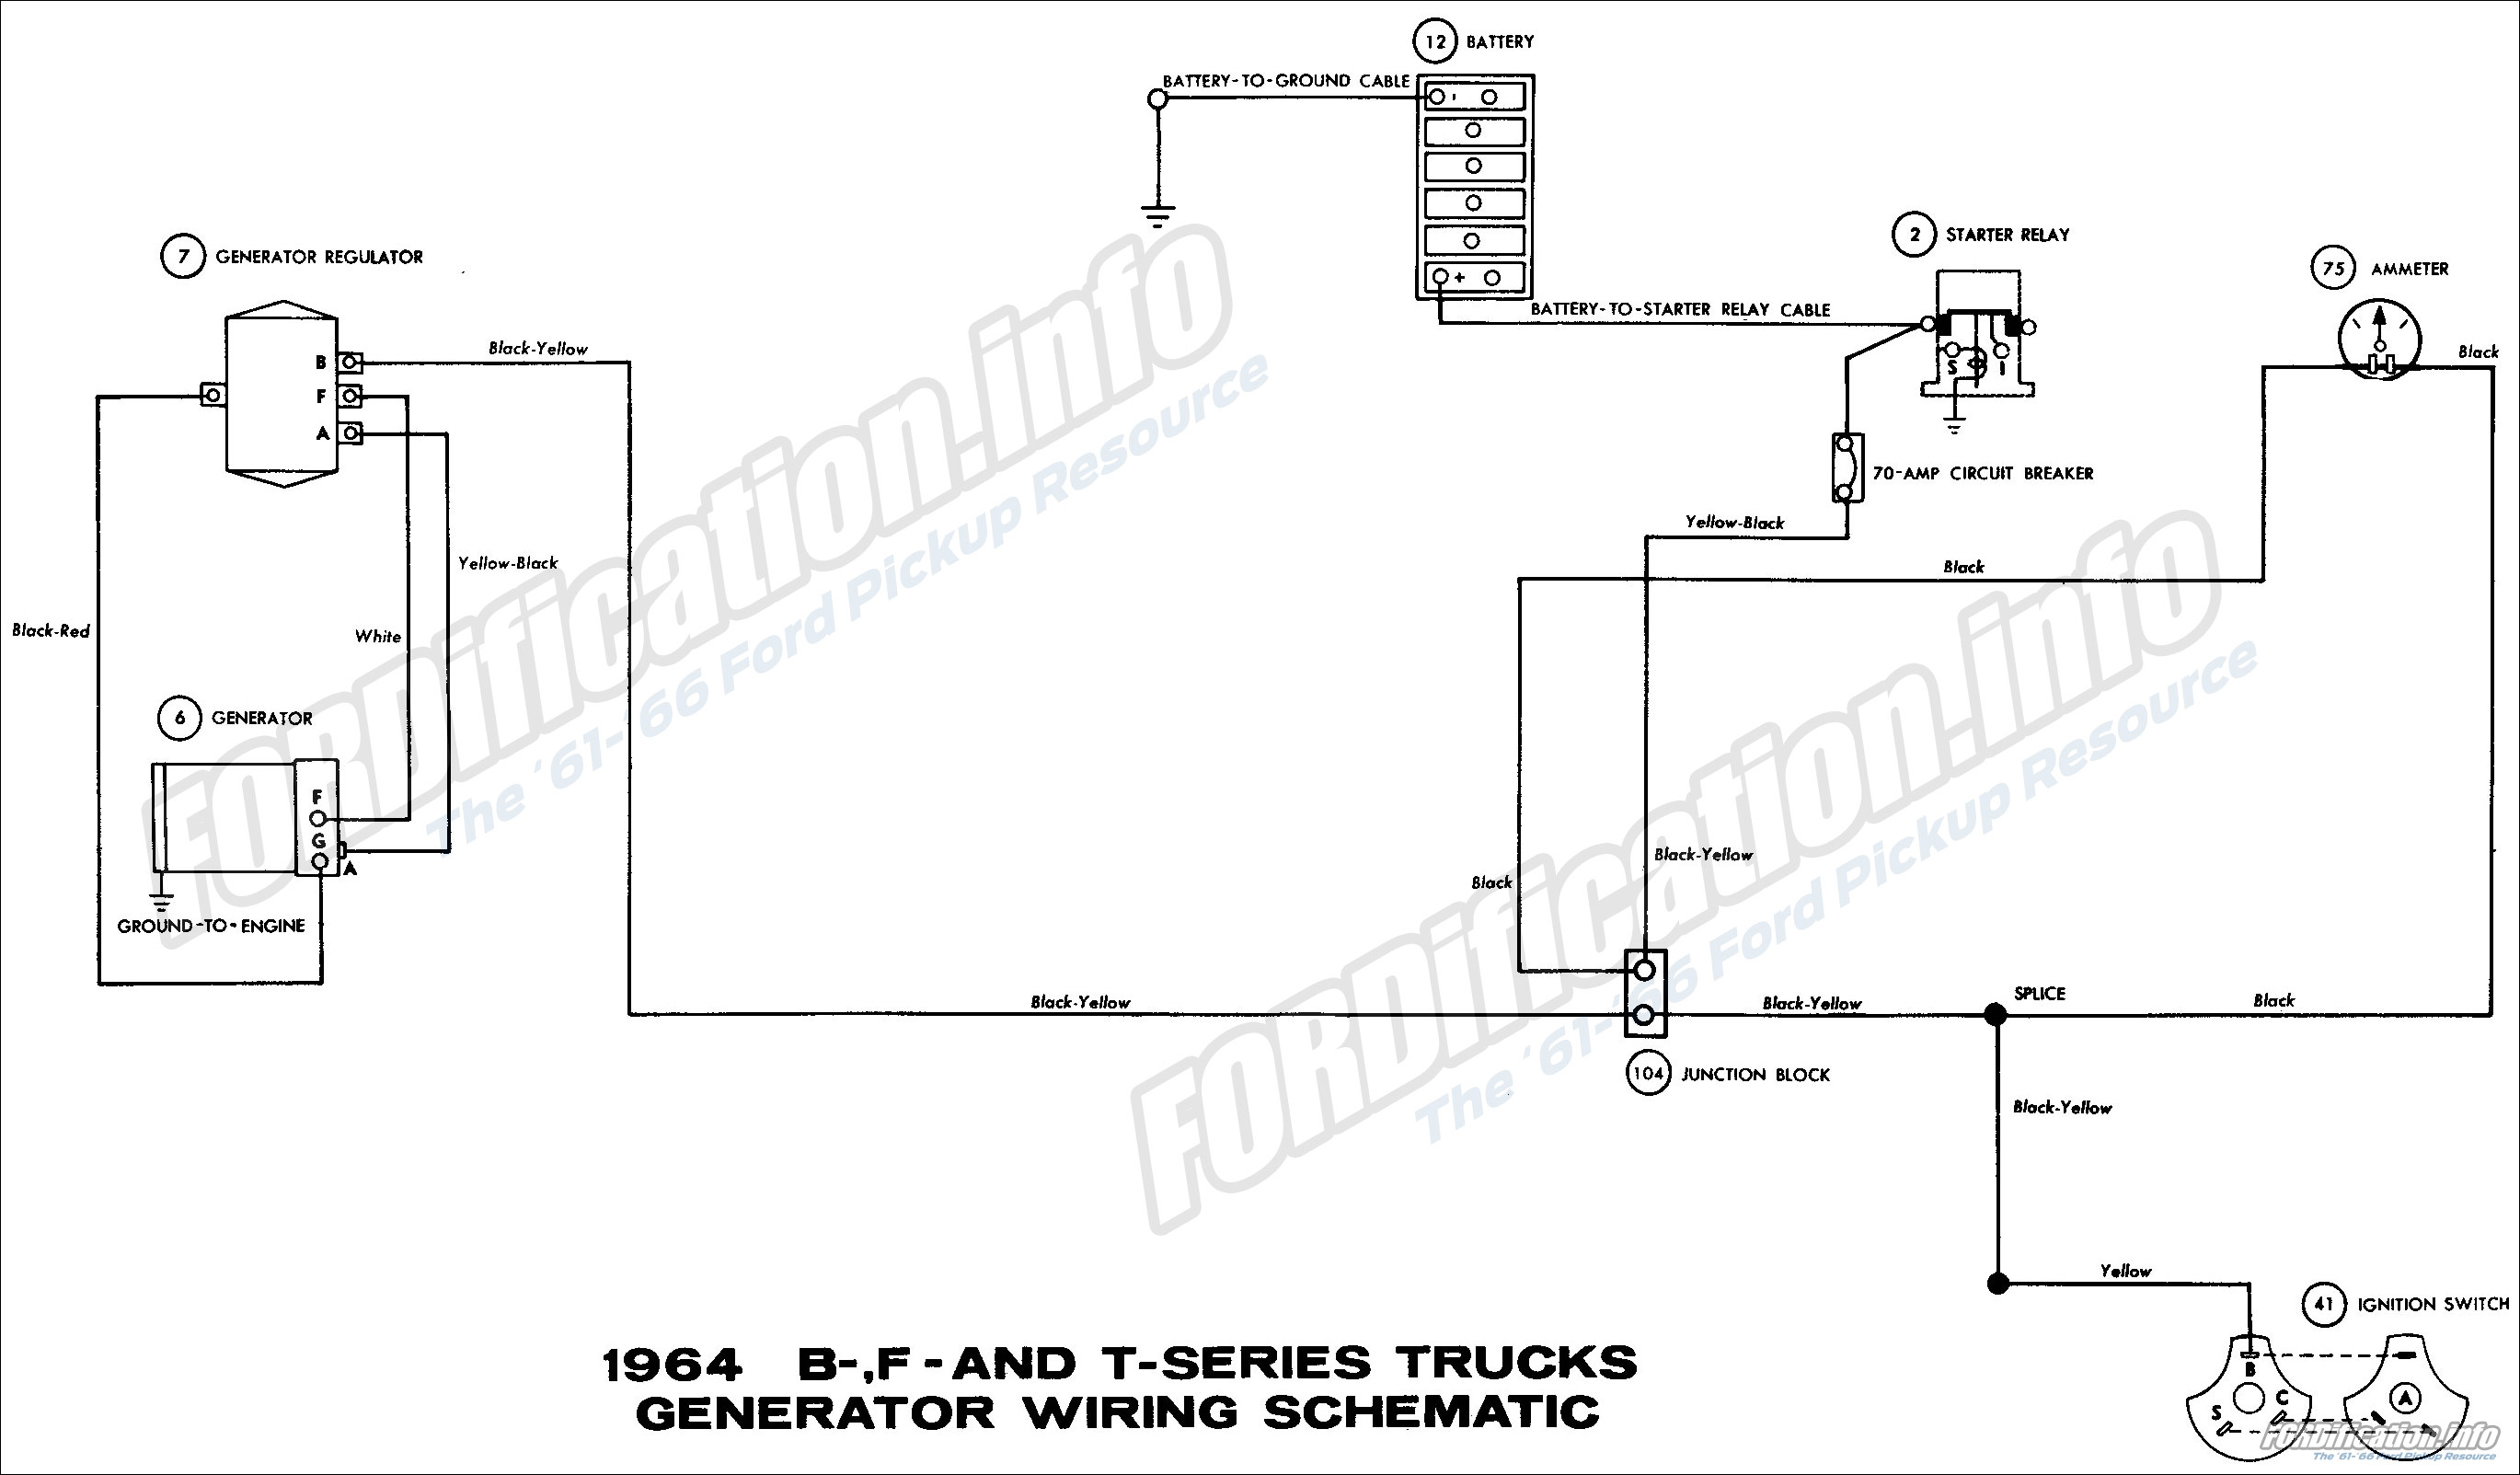 1964 ford truck wiring diagrams fordification info the 61 66 rh fordification info 2001 Ford F-150 Wiring Diagram 2001 Ford F-150 Wiring Diagram